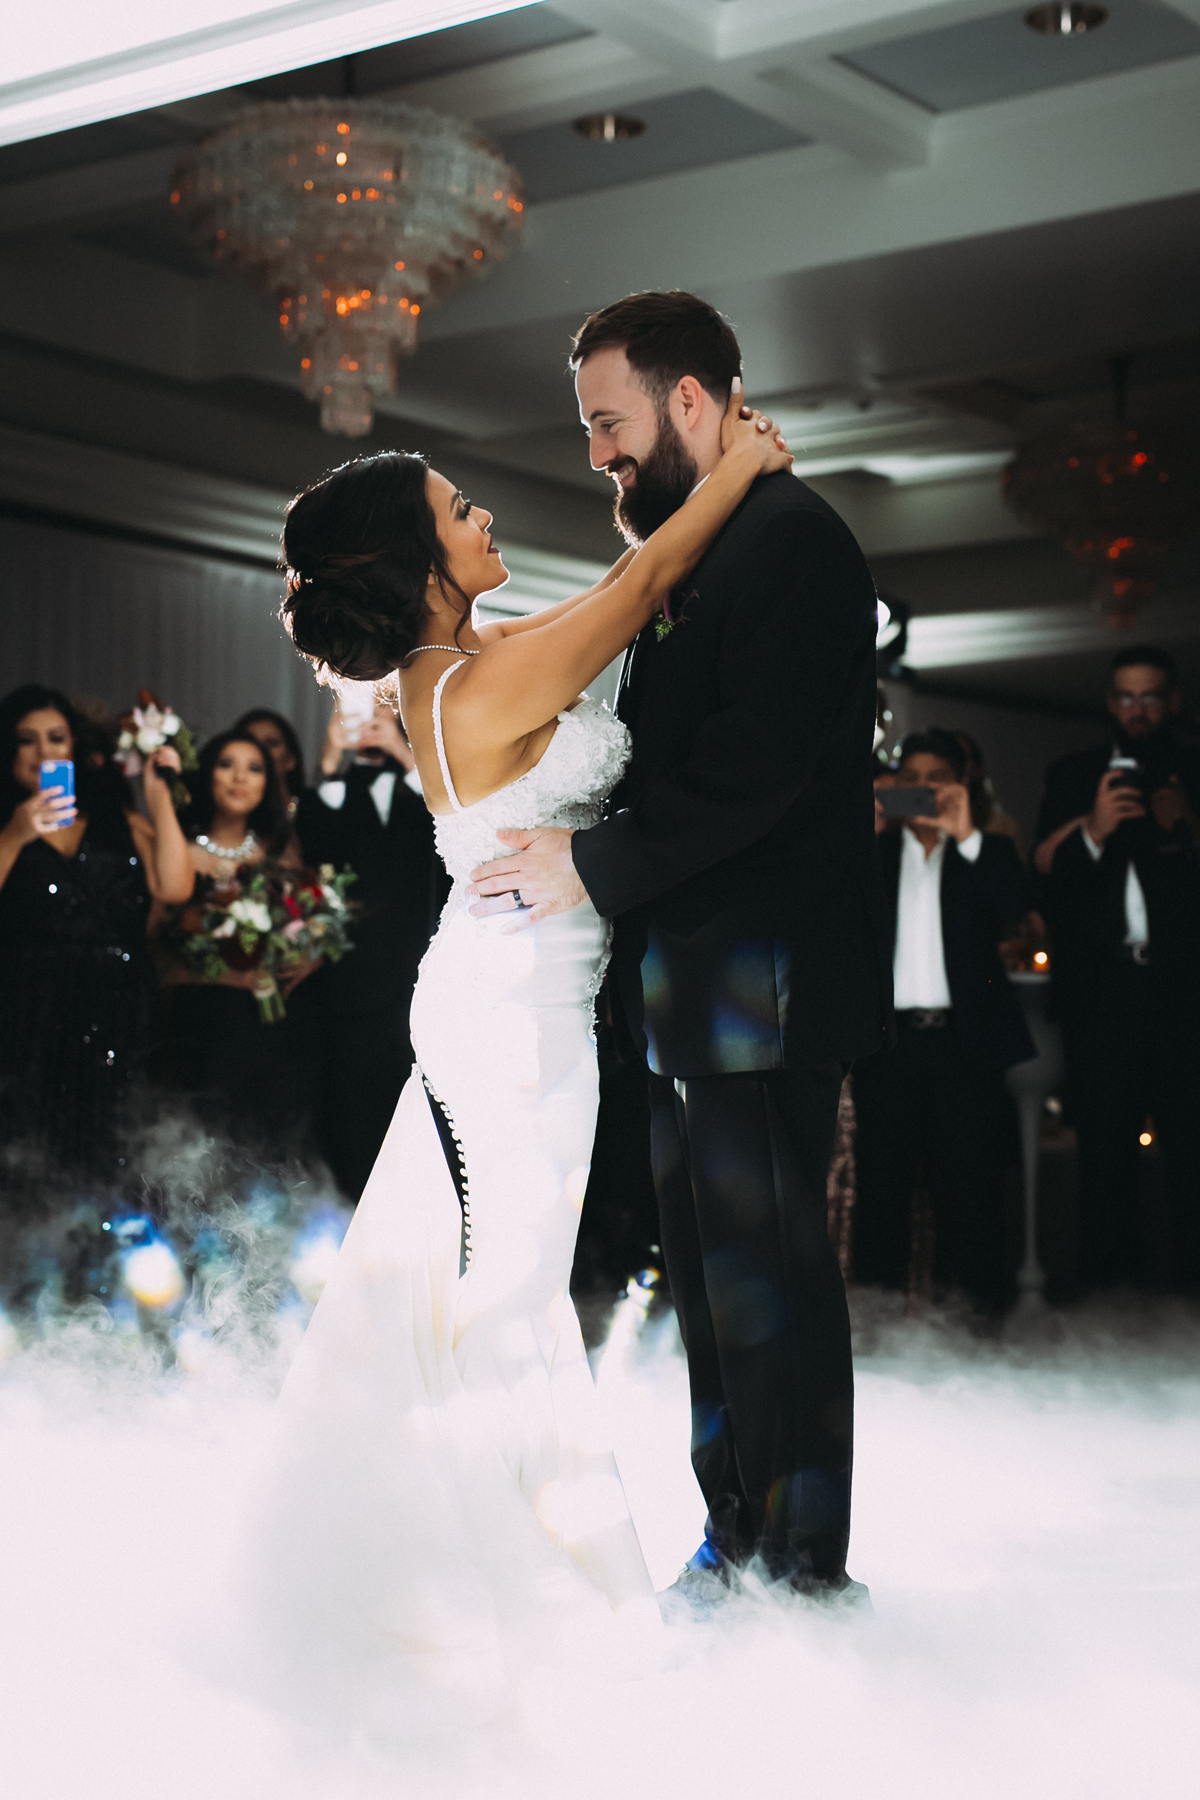 Breathtaking Contemporary Jewel Toned Fall Posh Wedding first dance.jpg